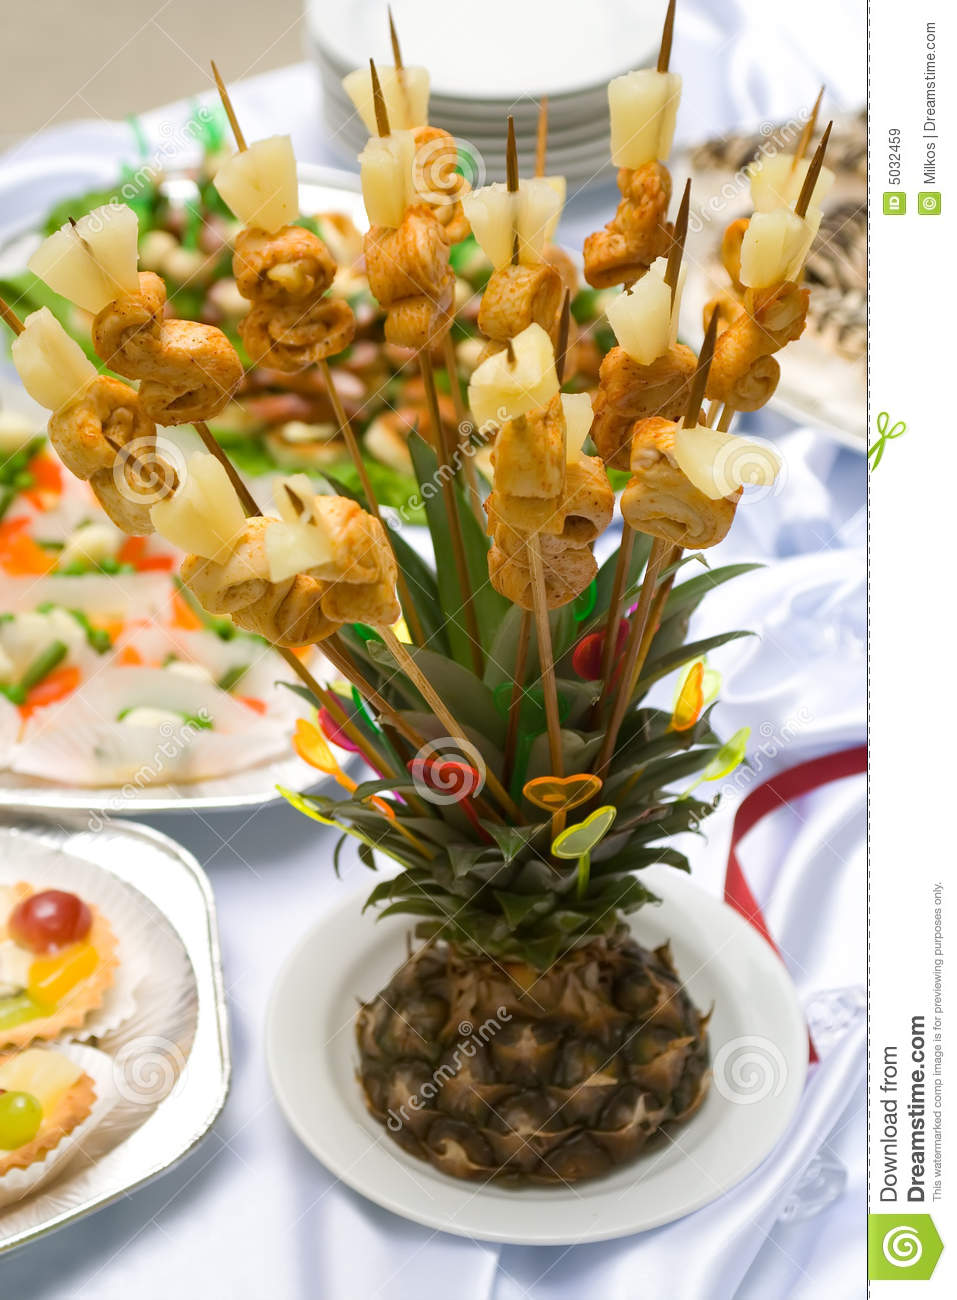 Ananas Buffet catering buffet style - pineapple stock image - image of chicken